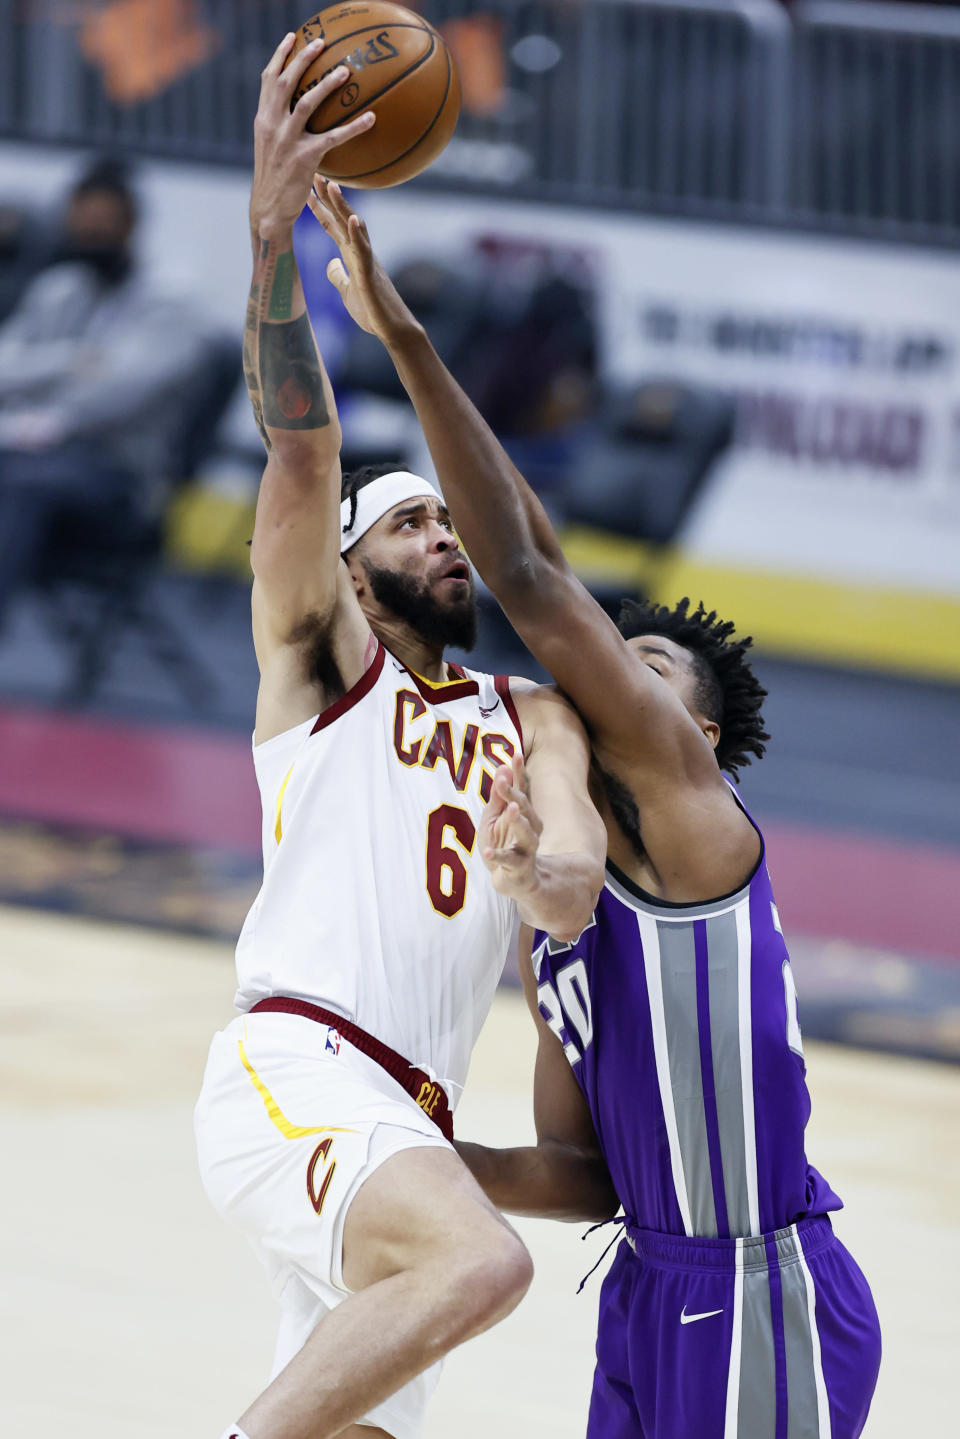 Cleveland Cavaliers' JaVale McGee (6) shoots against Sacramento Kings' Hassan Whiteside (20) in the first half of an NBA basketball game, Monday, March 22, 2021, in Cleveland. (AP Photo/Ron Schwane)